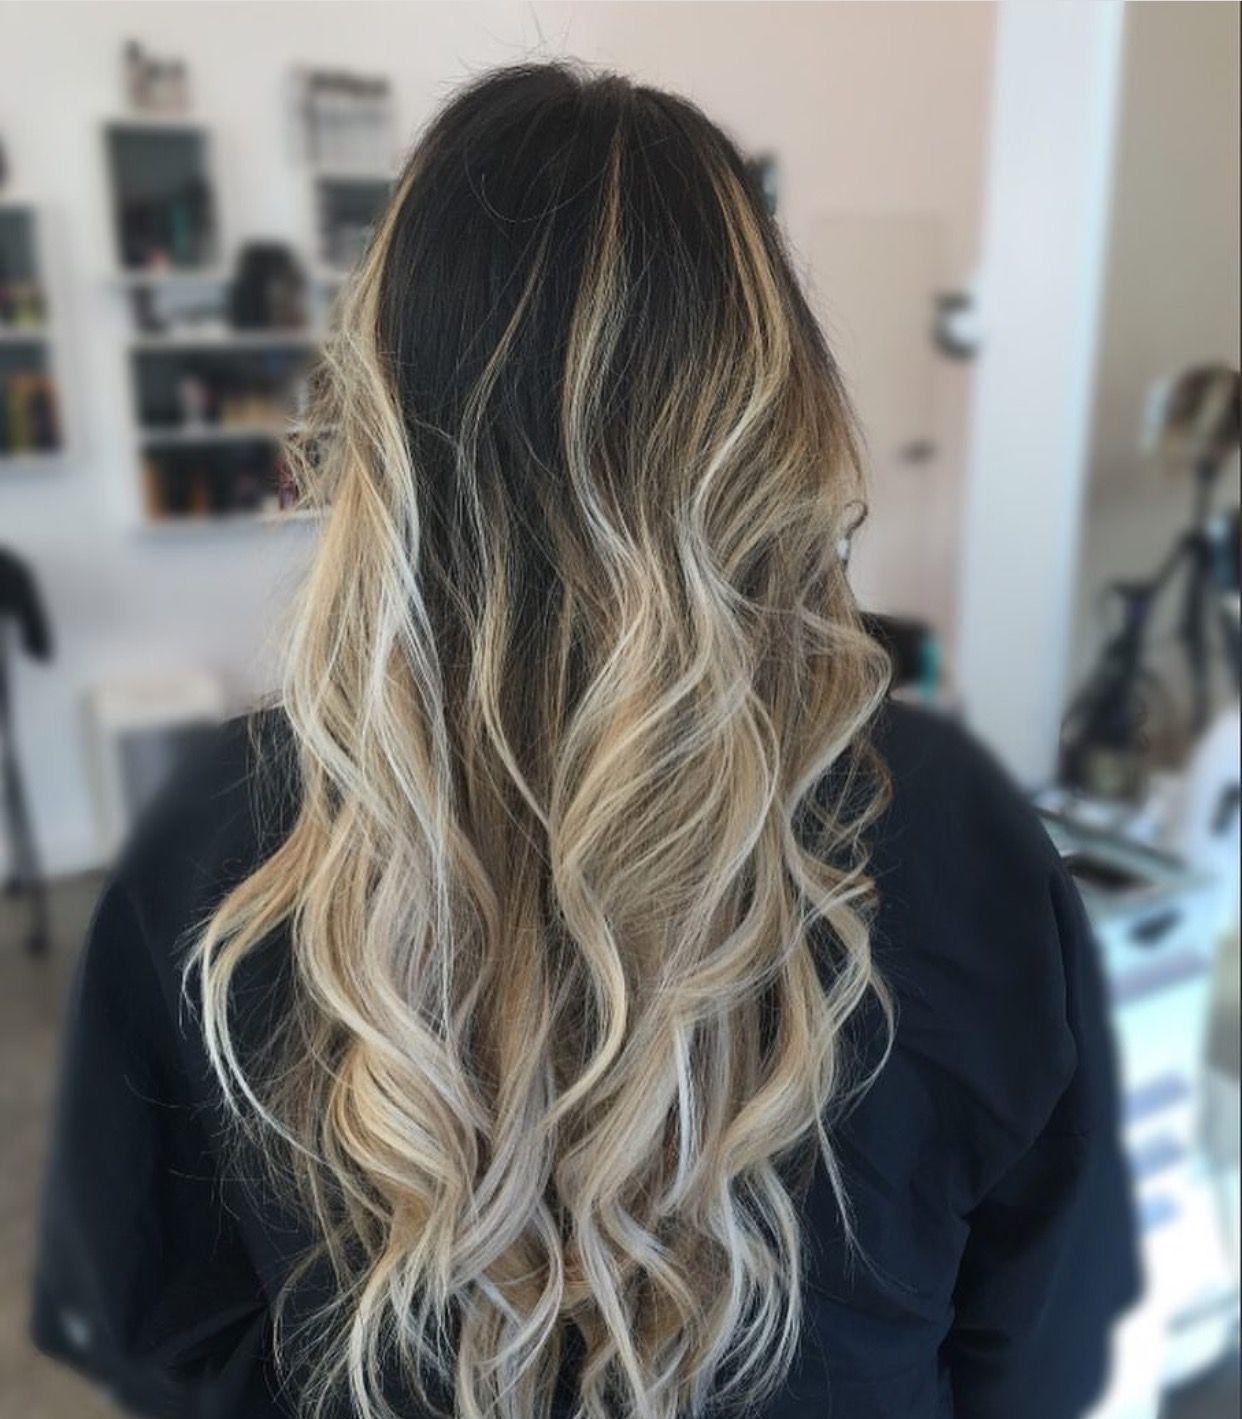 Dark brown to blonde balayage ombré